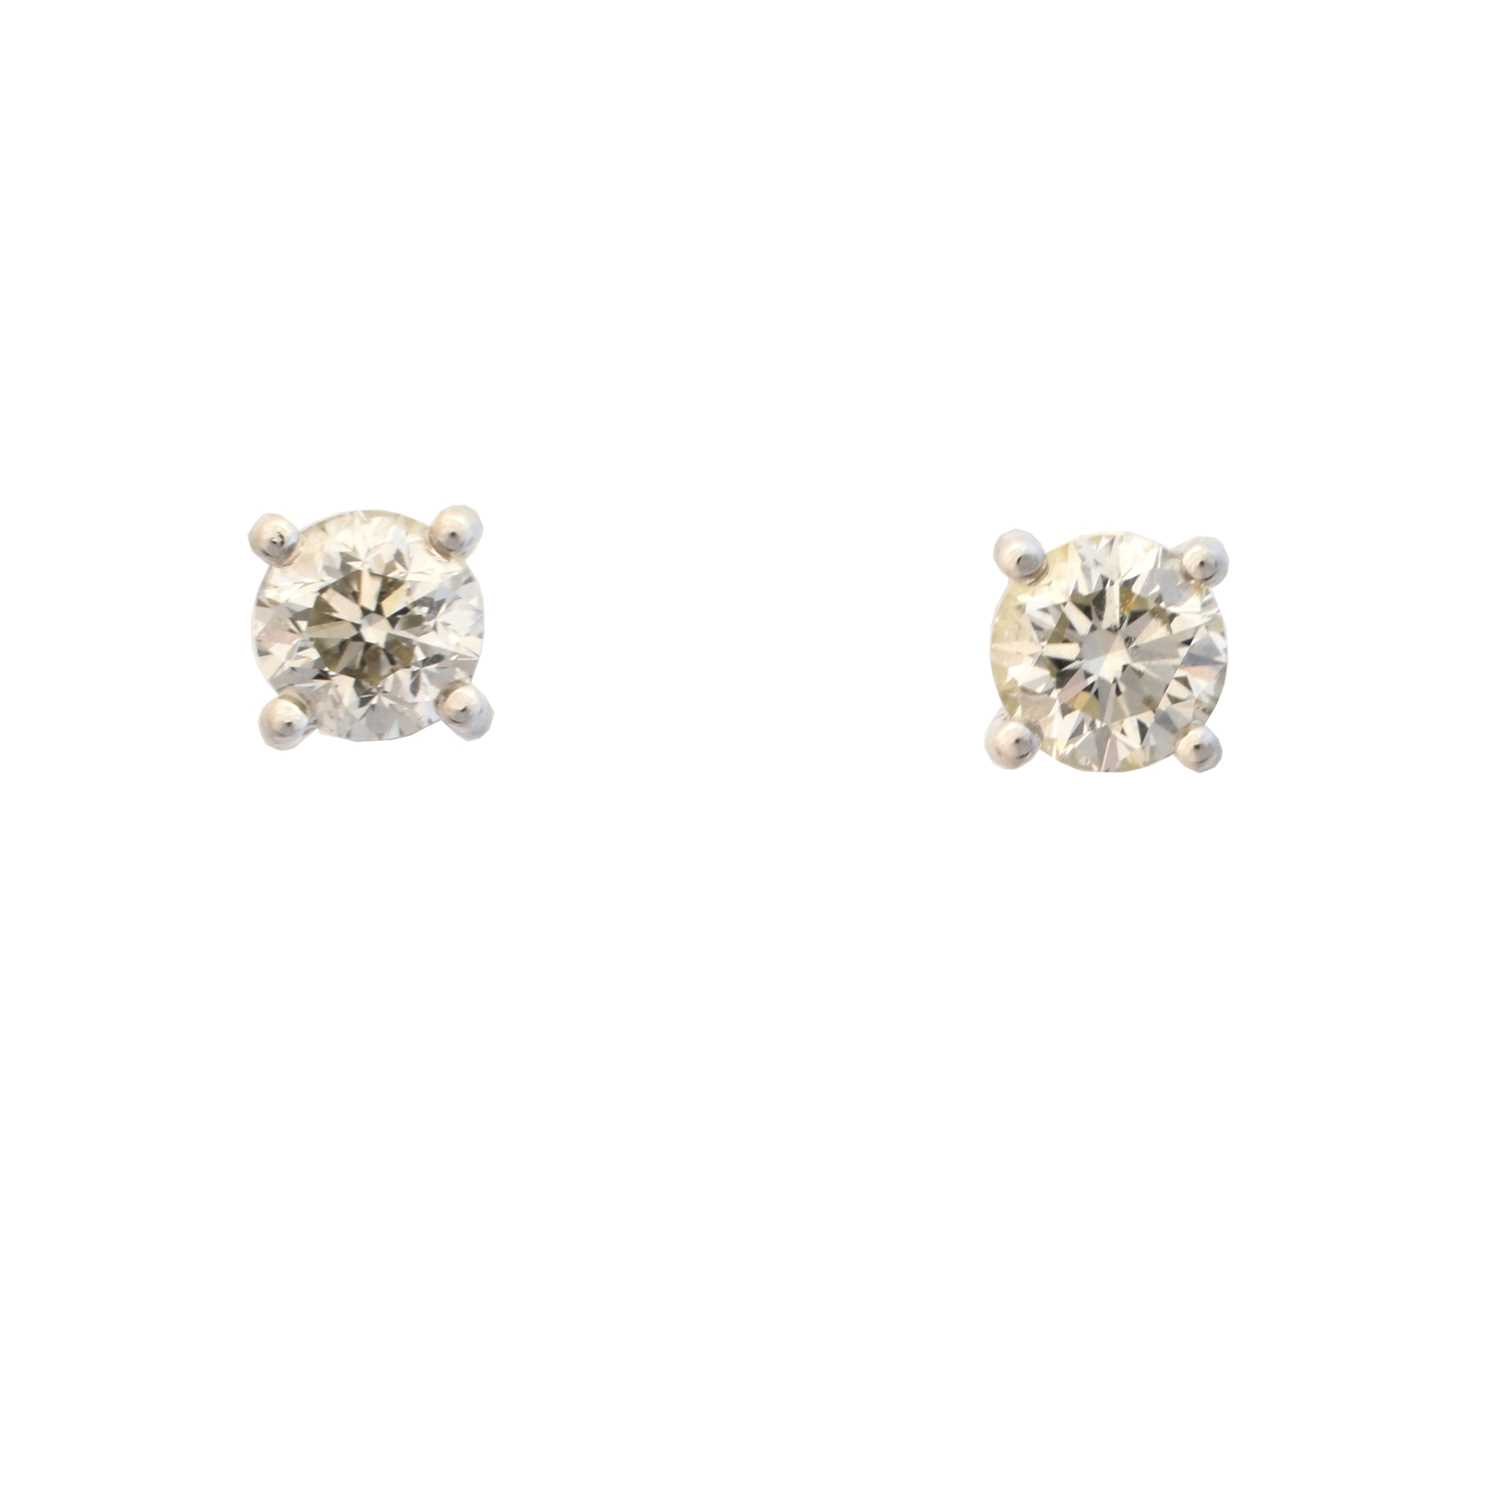 Lot 40 - A pair of 18ct gold diamond stud earrings